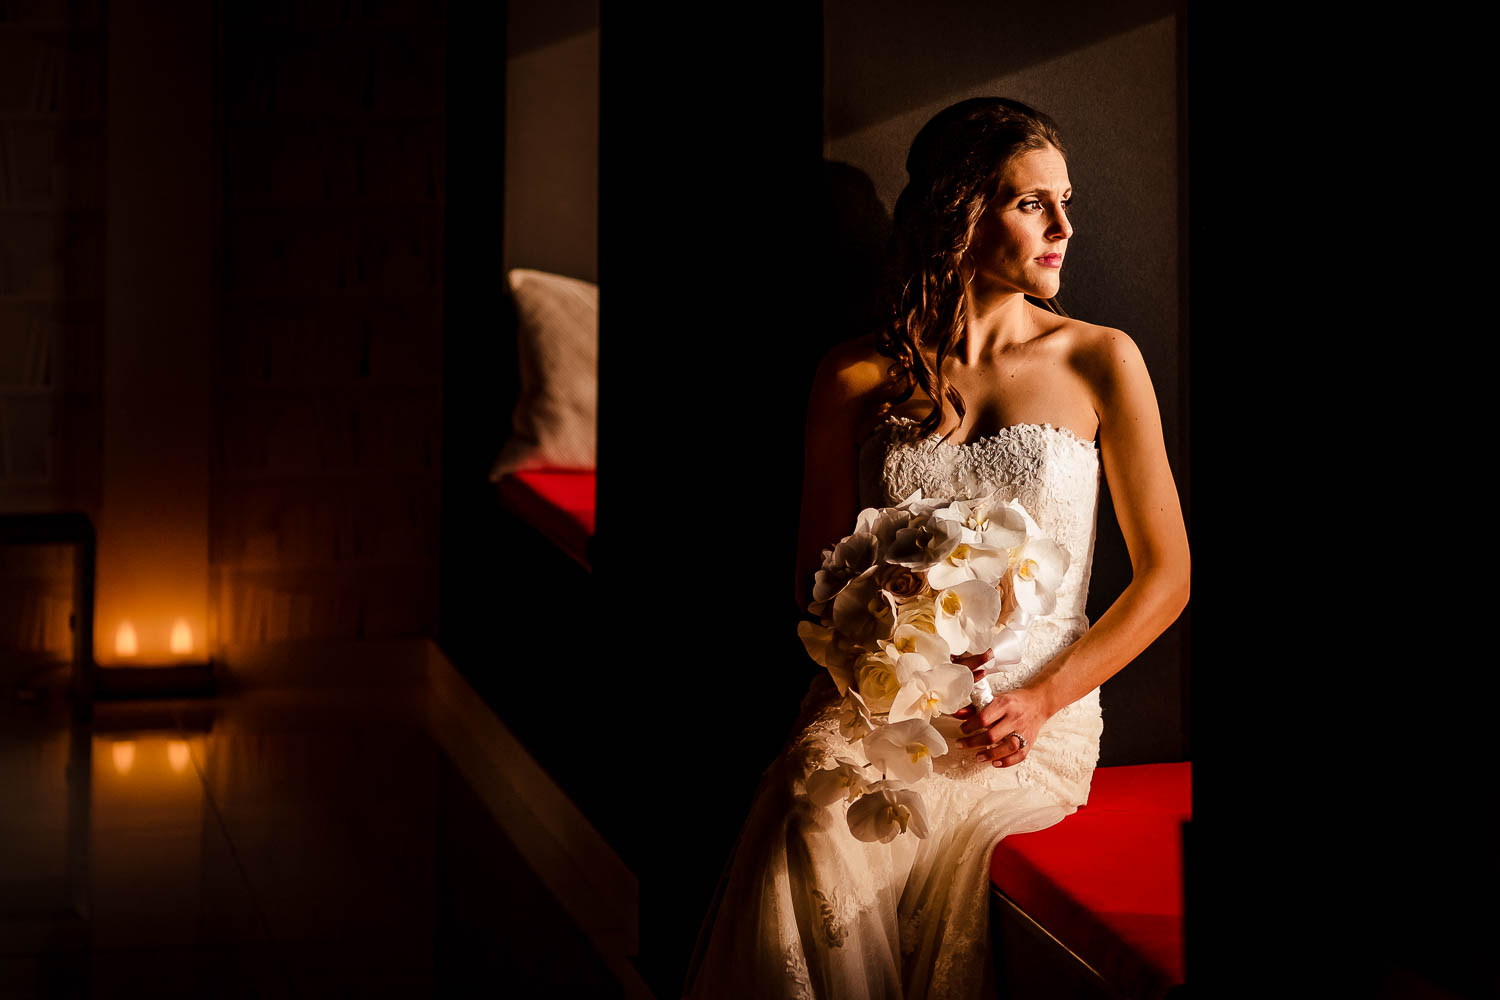 NYC Beautiful Bride wedding portrait